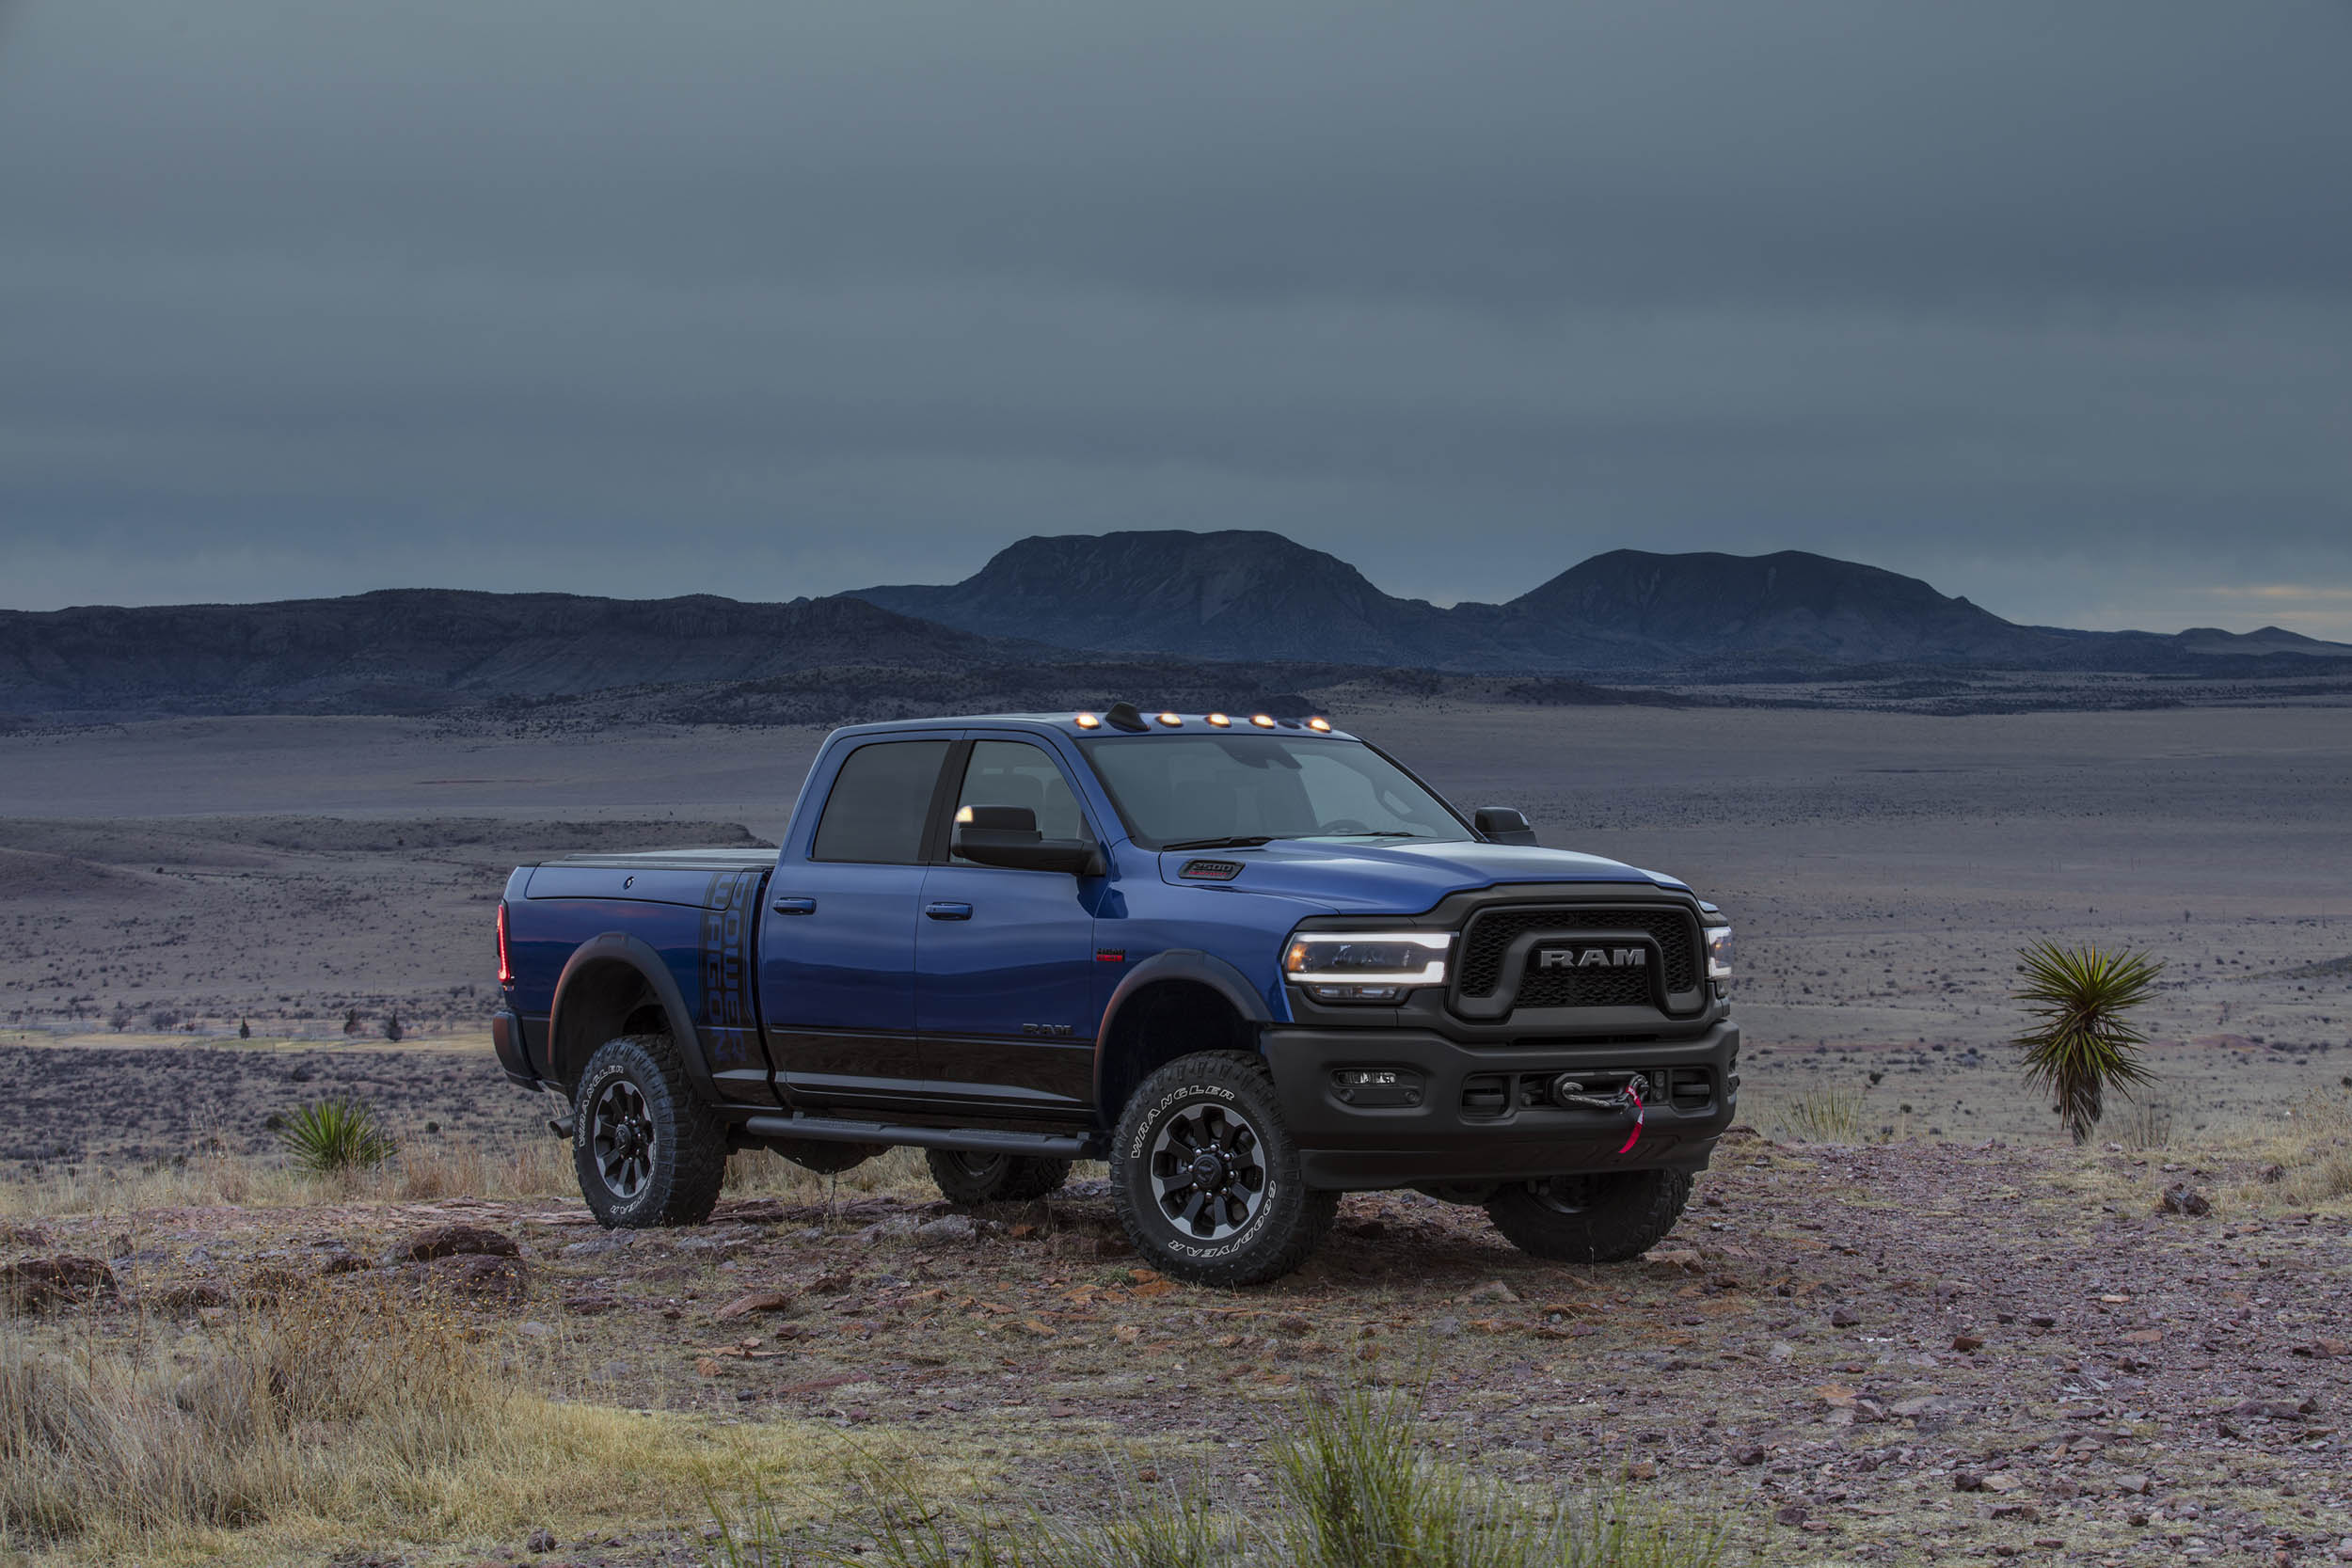 2019 RAM Power Wagon front 3/4